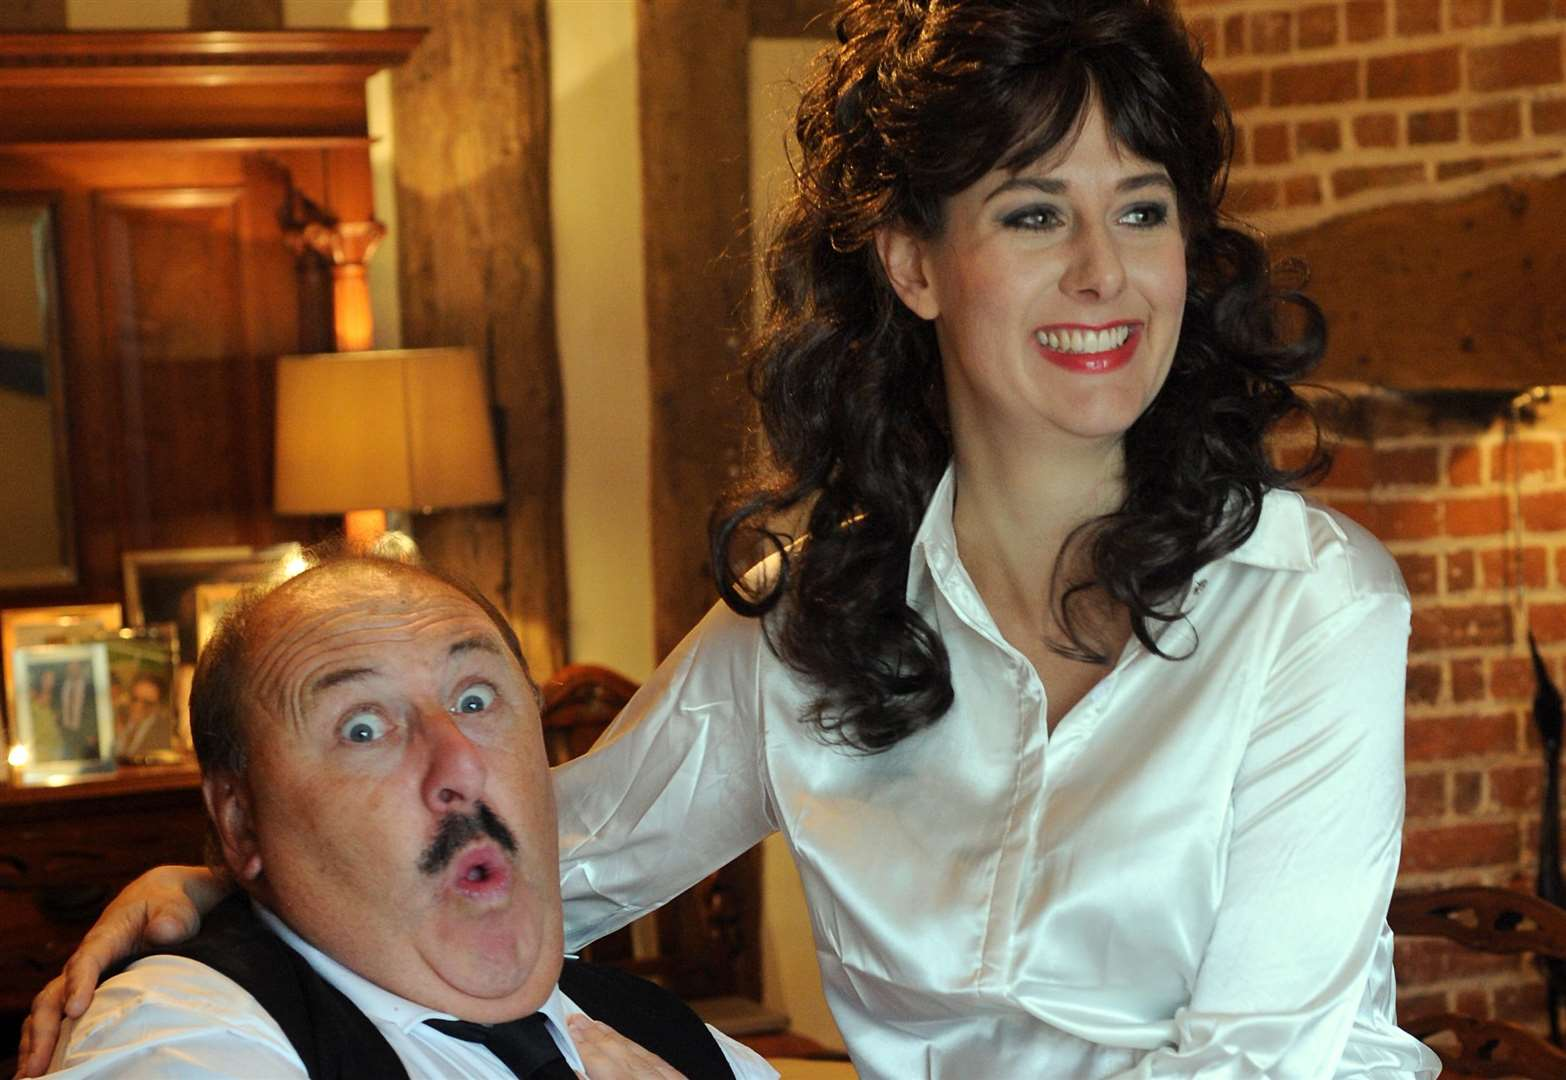 REVIEW: 'Allo 'Allo at The Theatre Royal in Bury St Edmunds